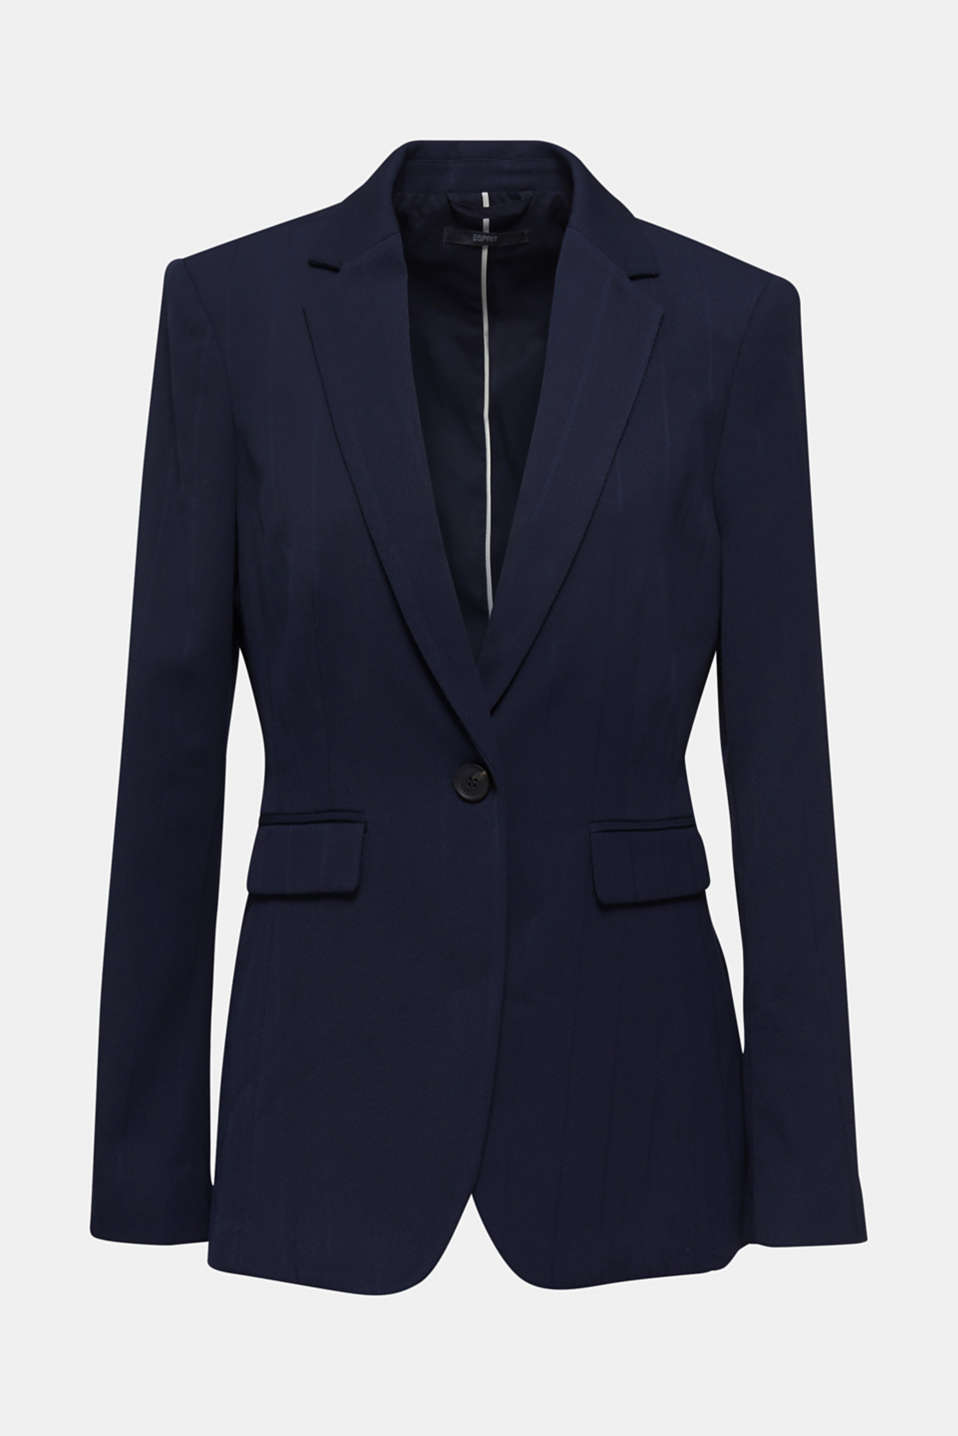 STRUCTURE STRIPES textured blazer, NAVY, detail image number 8